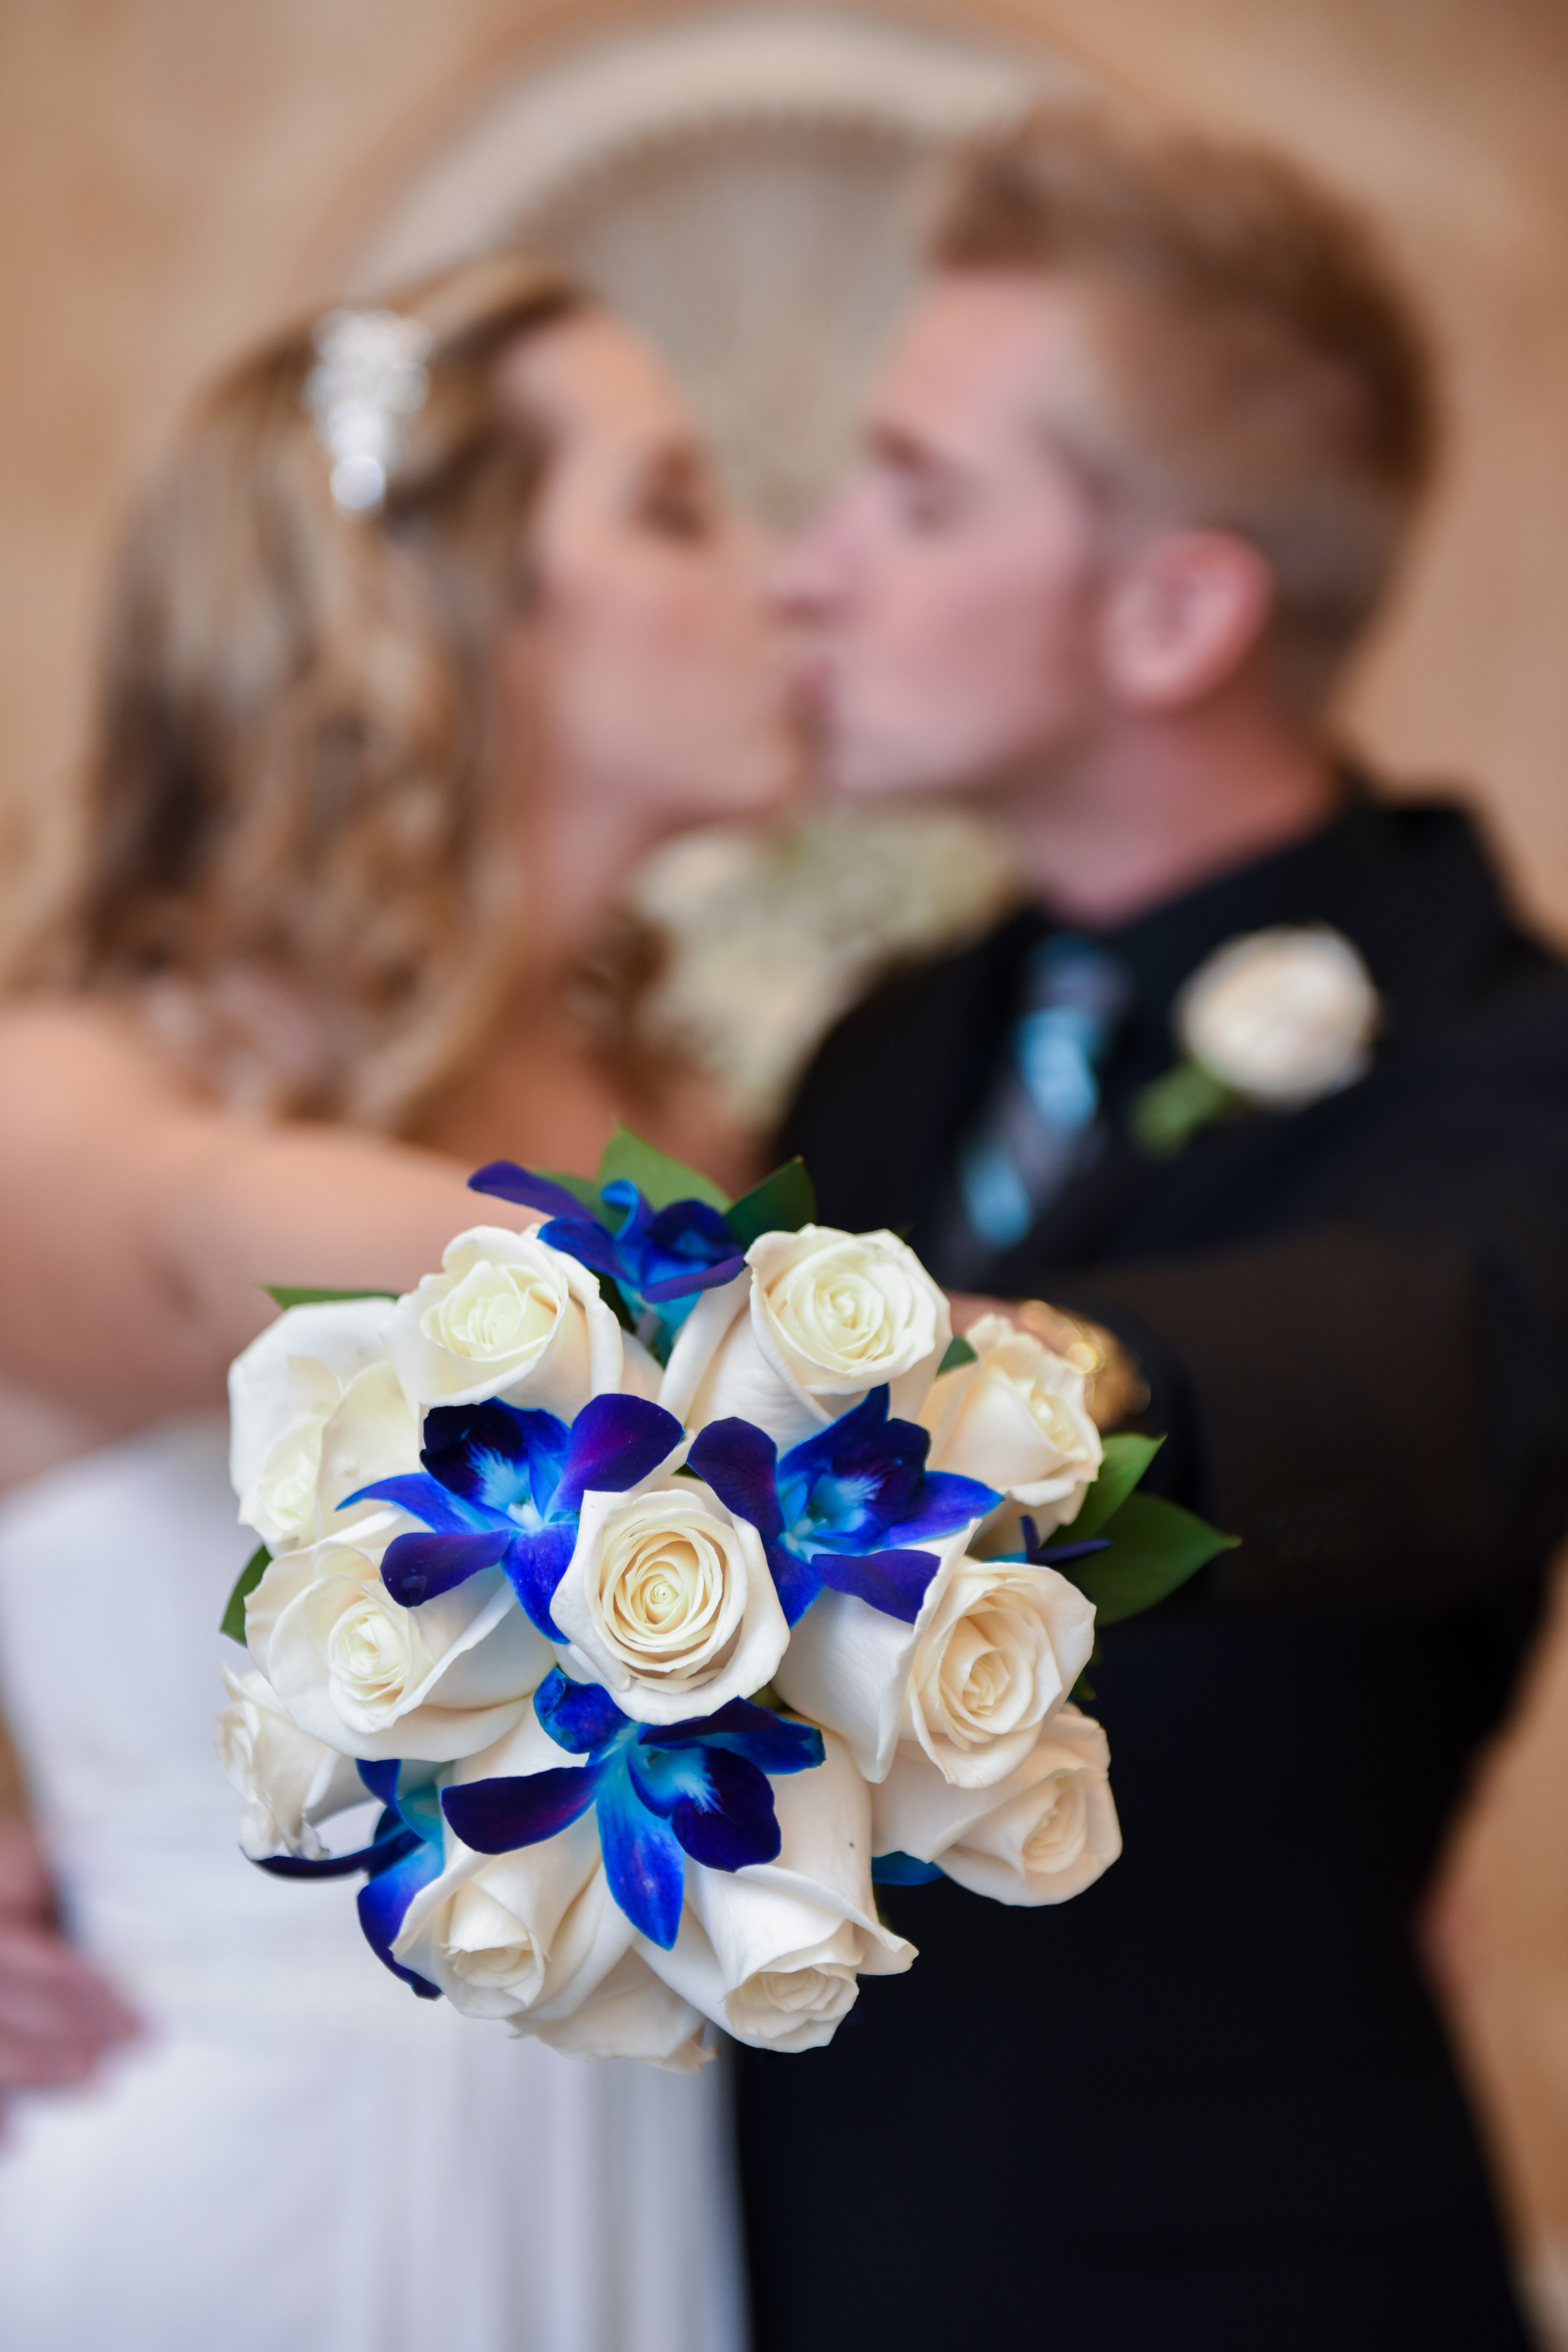 Chapel Of The Flowers In Las Vegas Introduces New Wedding Flower Designs